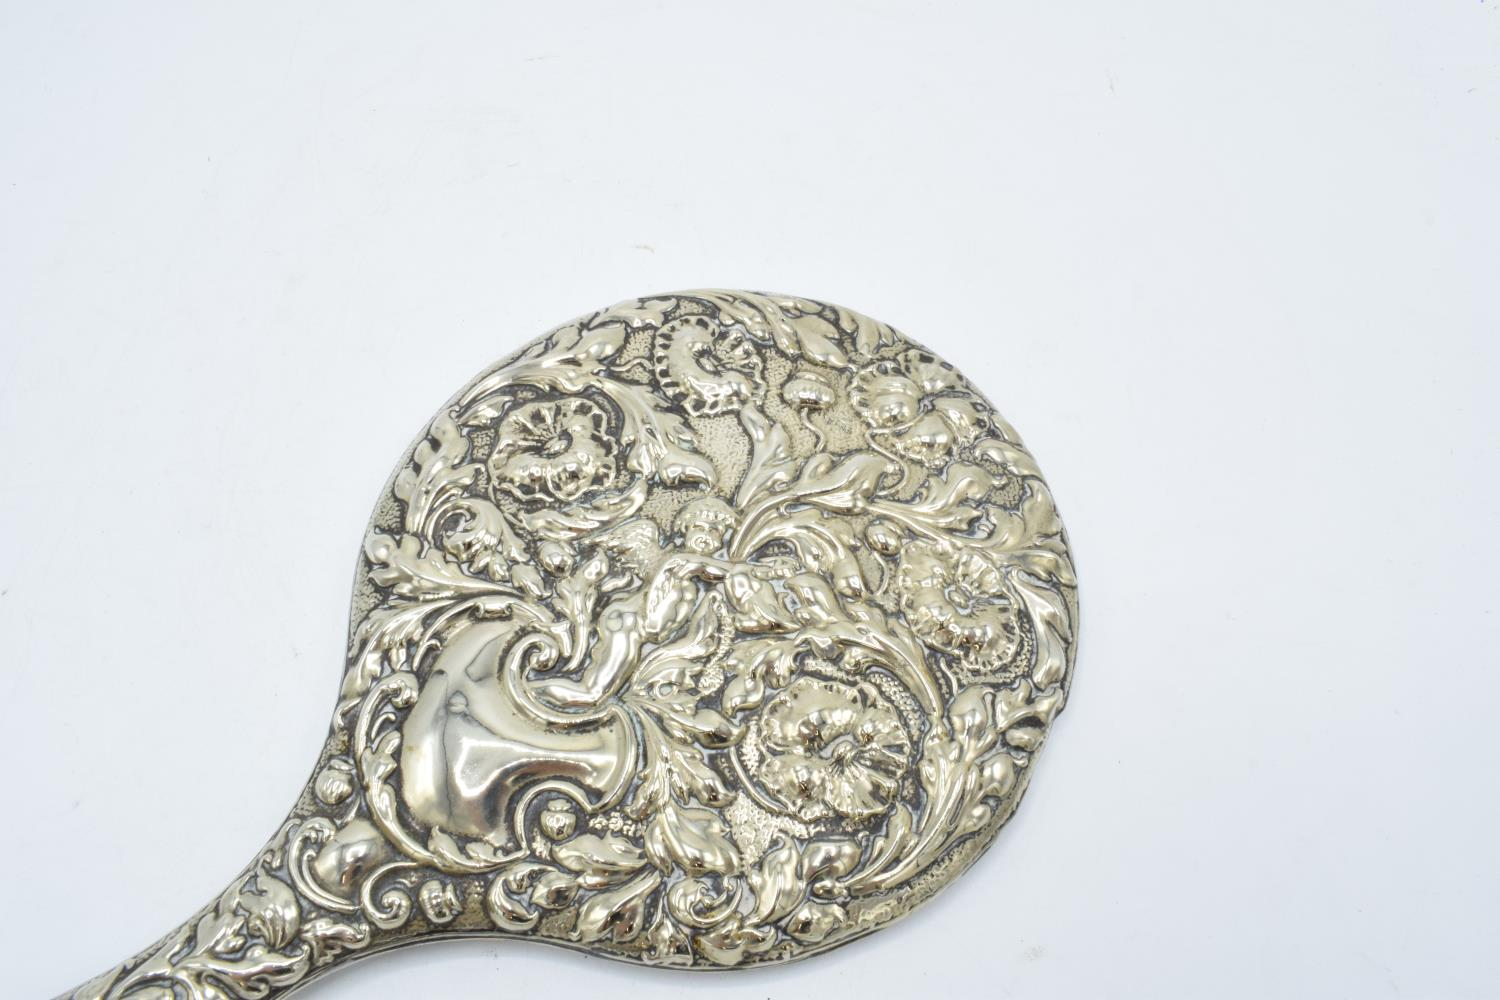 An ornate embossed hand mirror, assumed silver plate. - Image 3 of 4